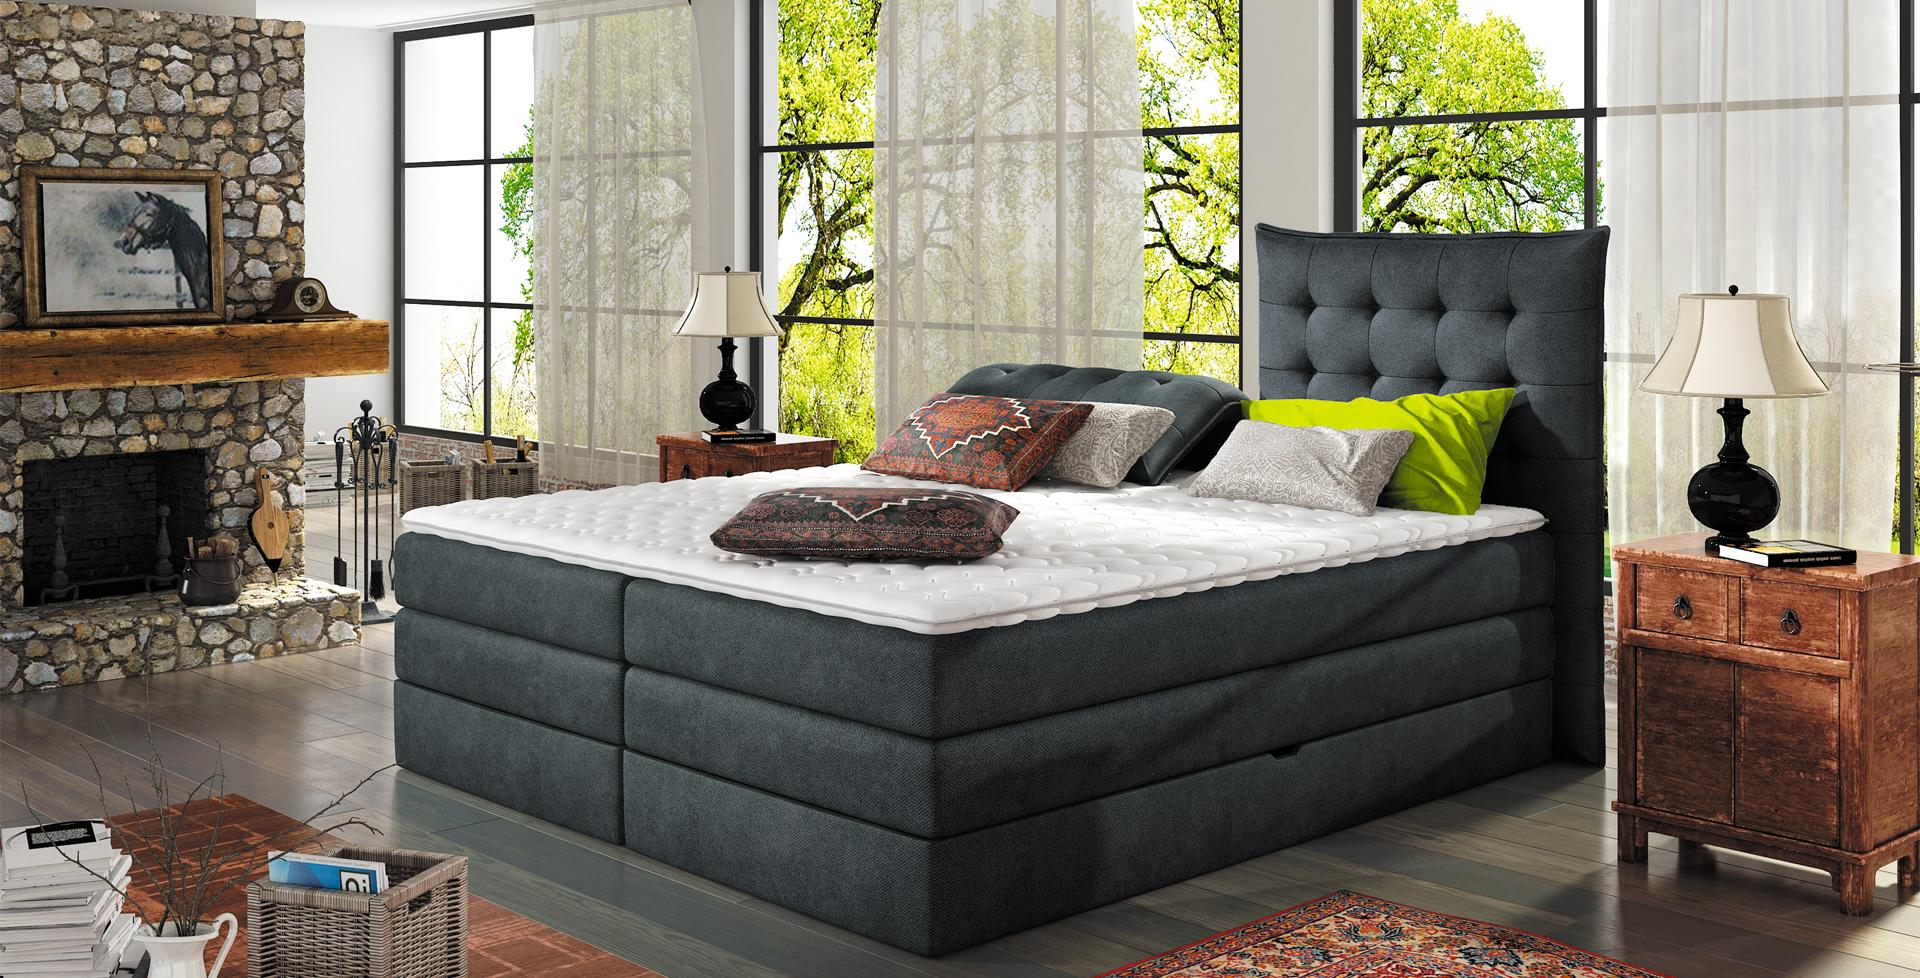 boxspringbett design bett topper federkern doppelbett polsterbett mit bettkasten aura www. Black Bedroom Furniture Sets. Home Design Ideas